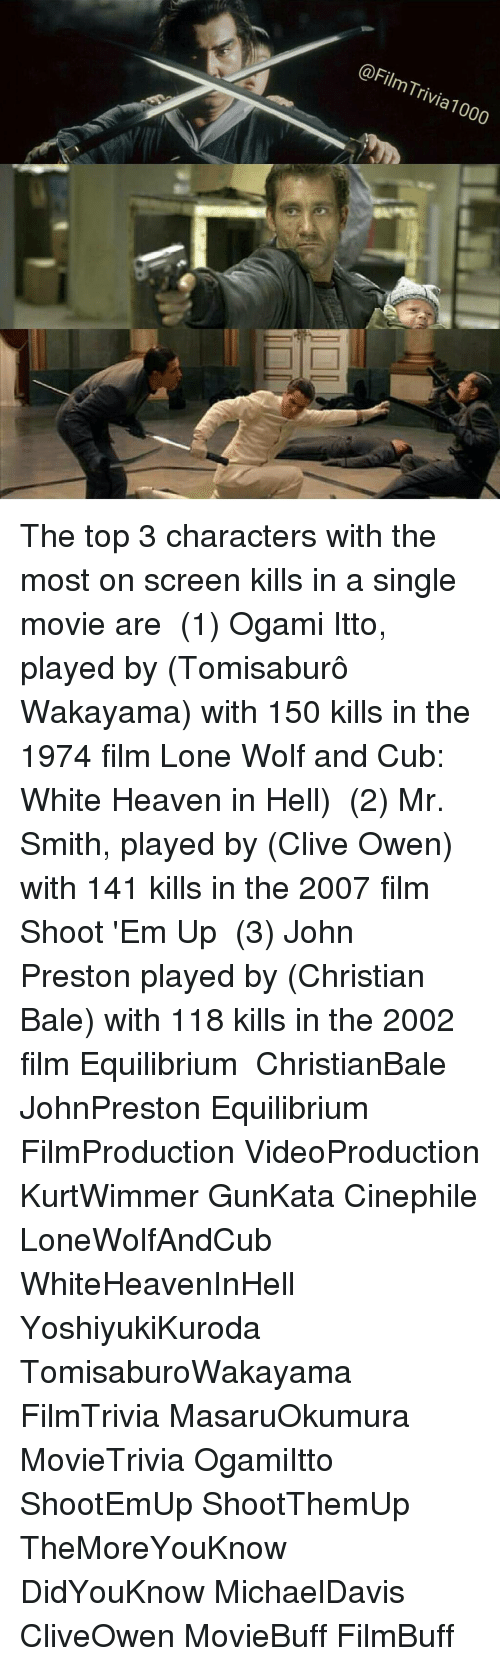 wakayama christian singles Top 10 highest body count action movie characters in this amazing sci-fi movie christian bale wiped out it has to be ogami itto played by tomisaburo wakayama.